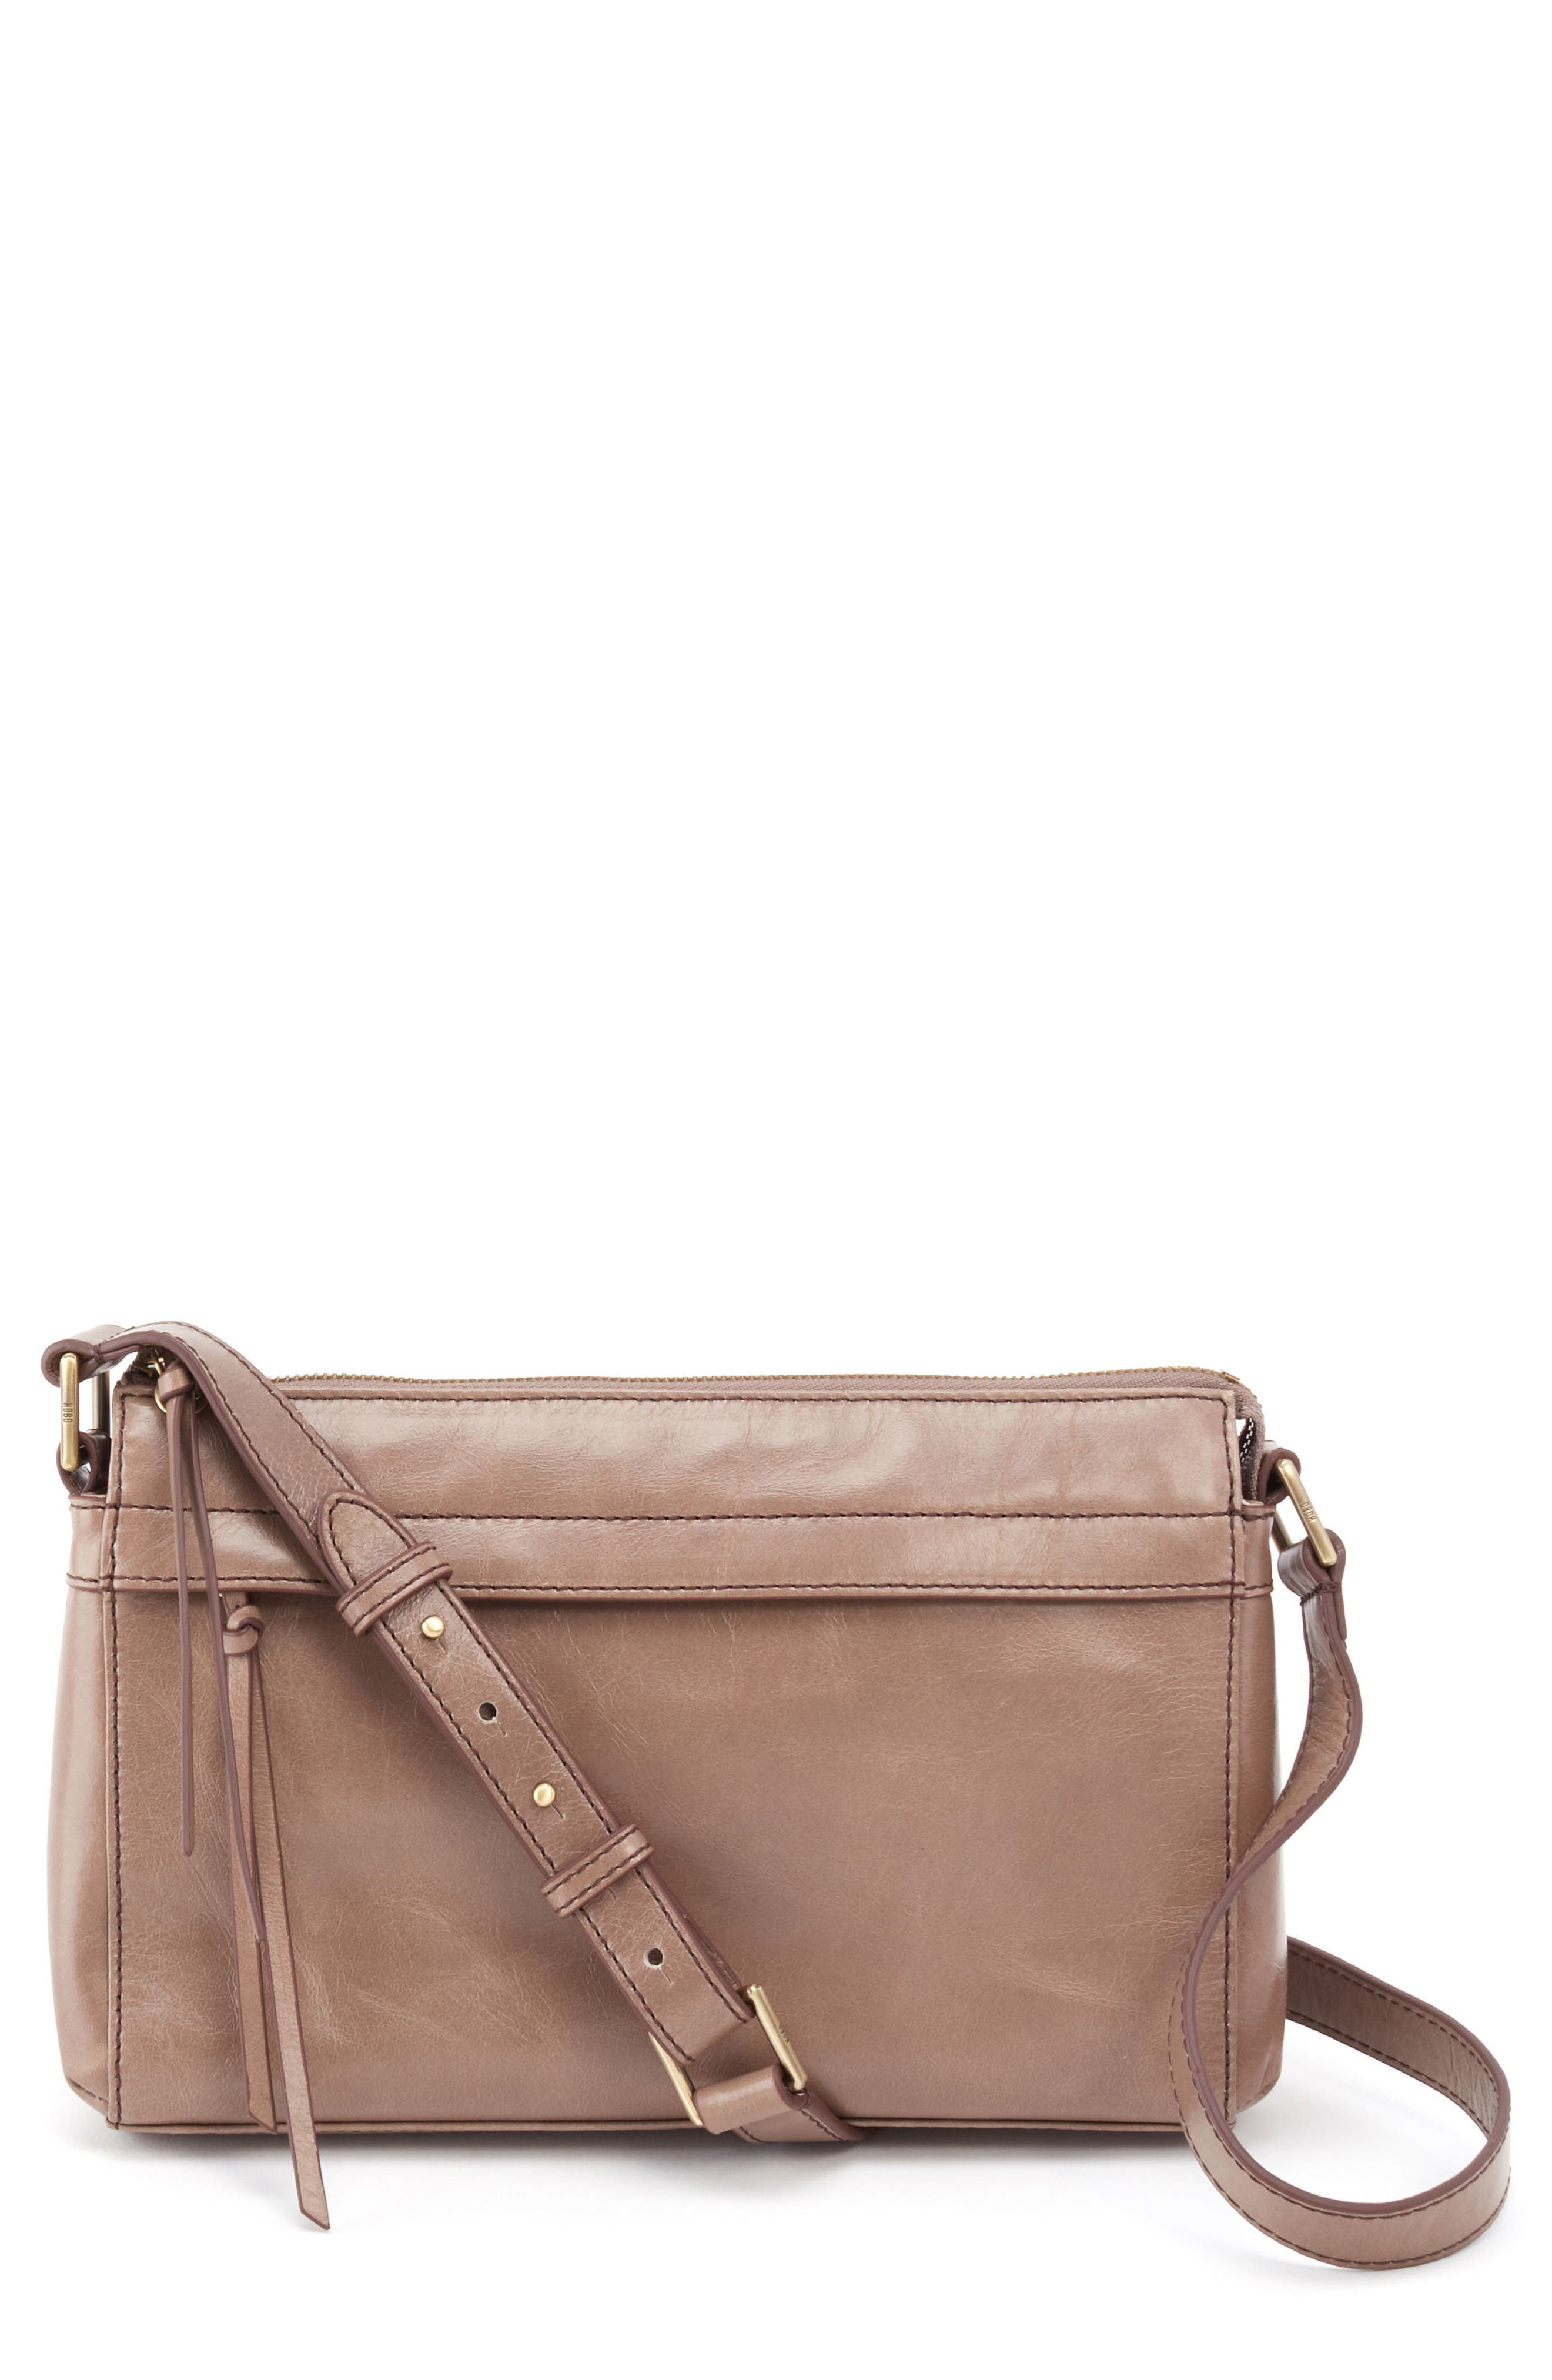 Tobey Leather Crossbody Bag,                         Main,                         color, Ash